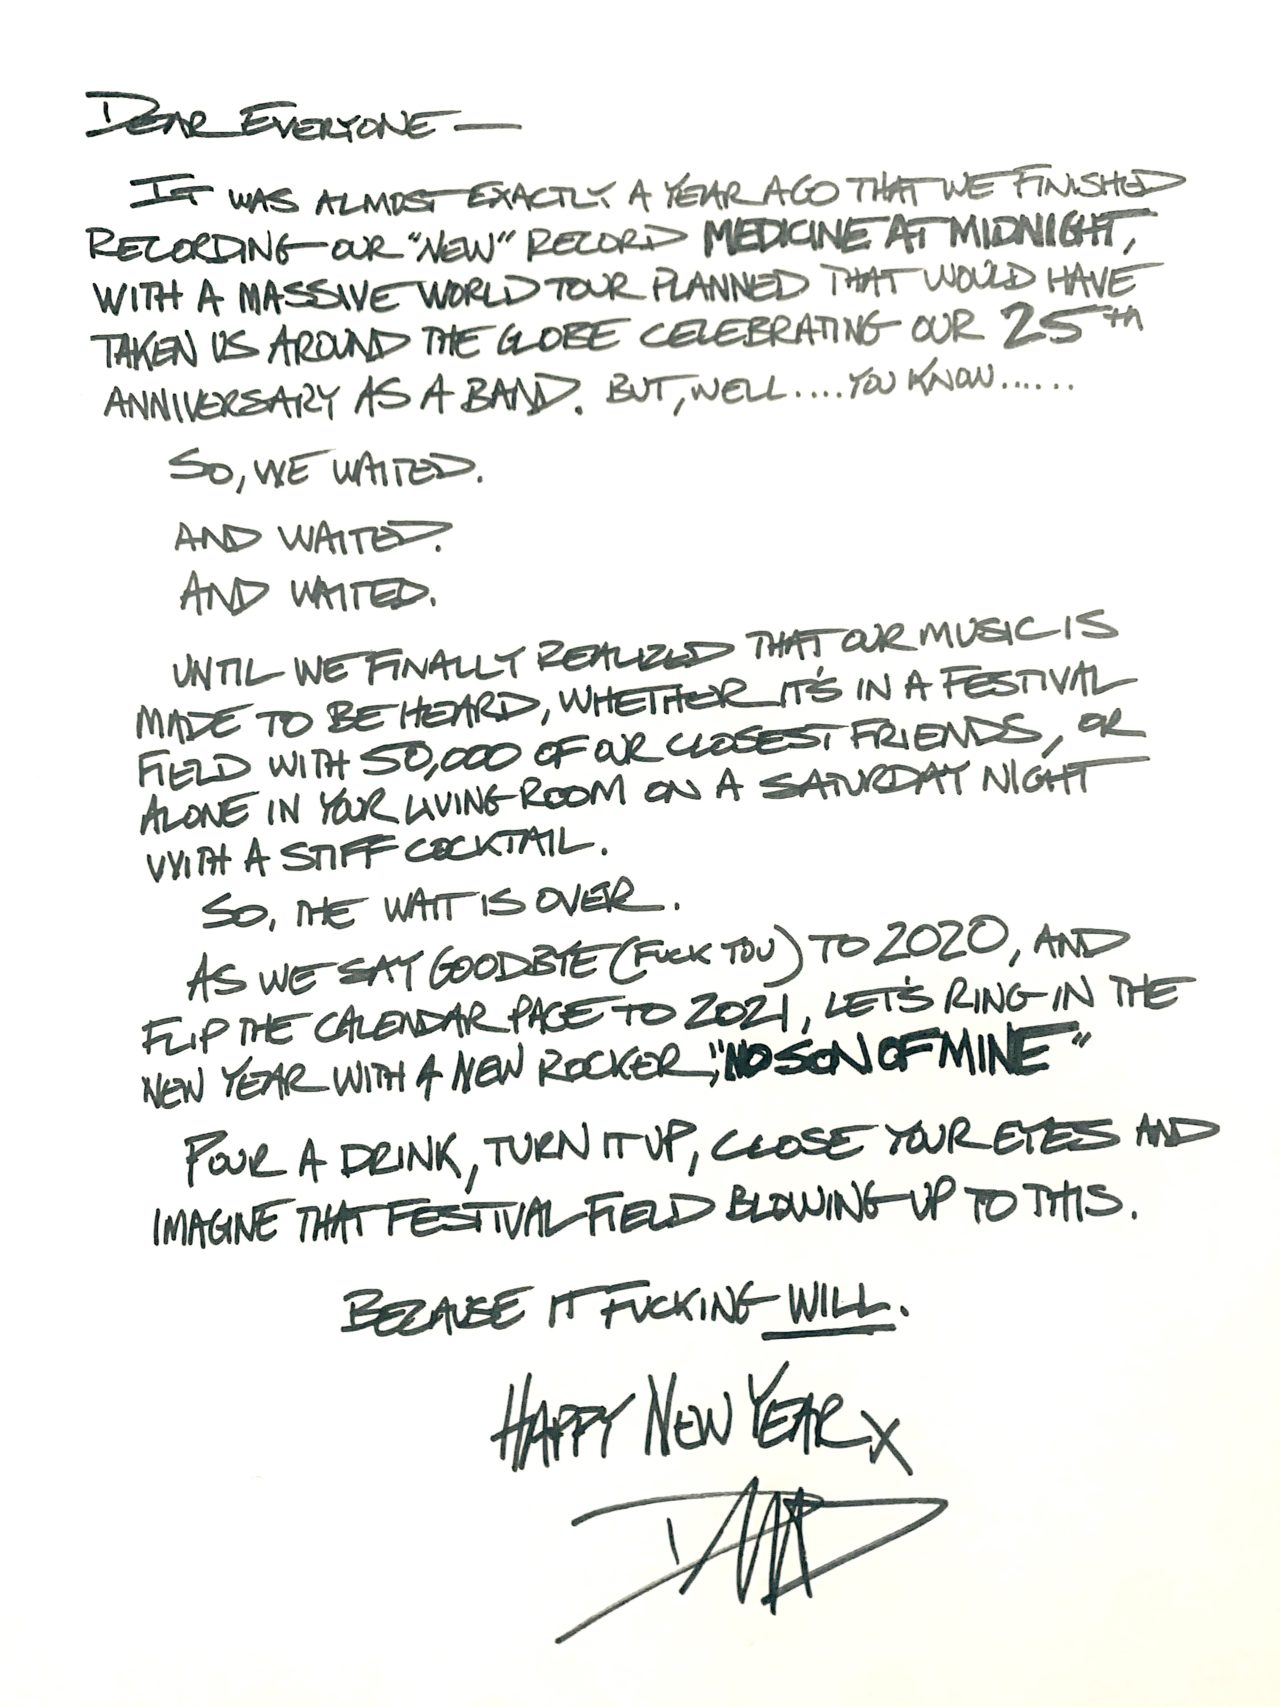 Dave Grohl letter